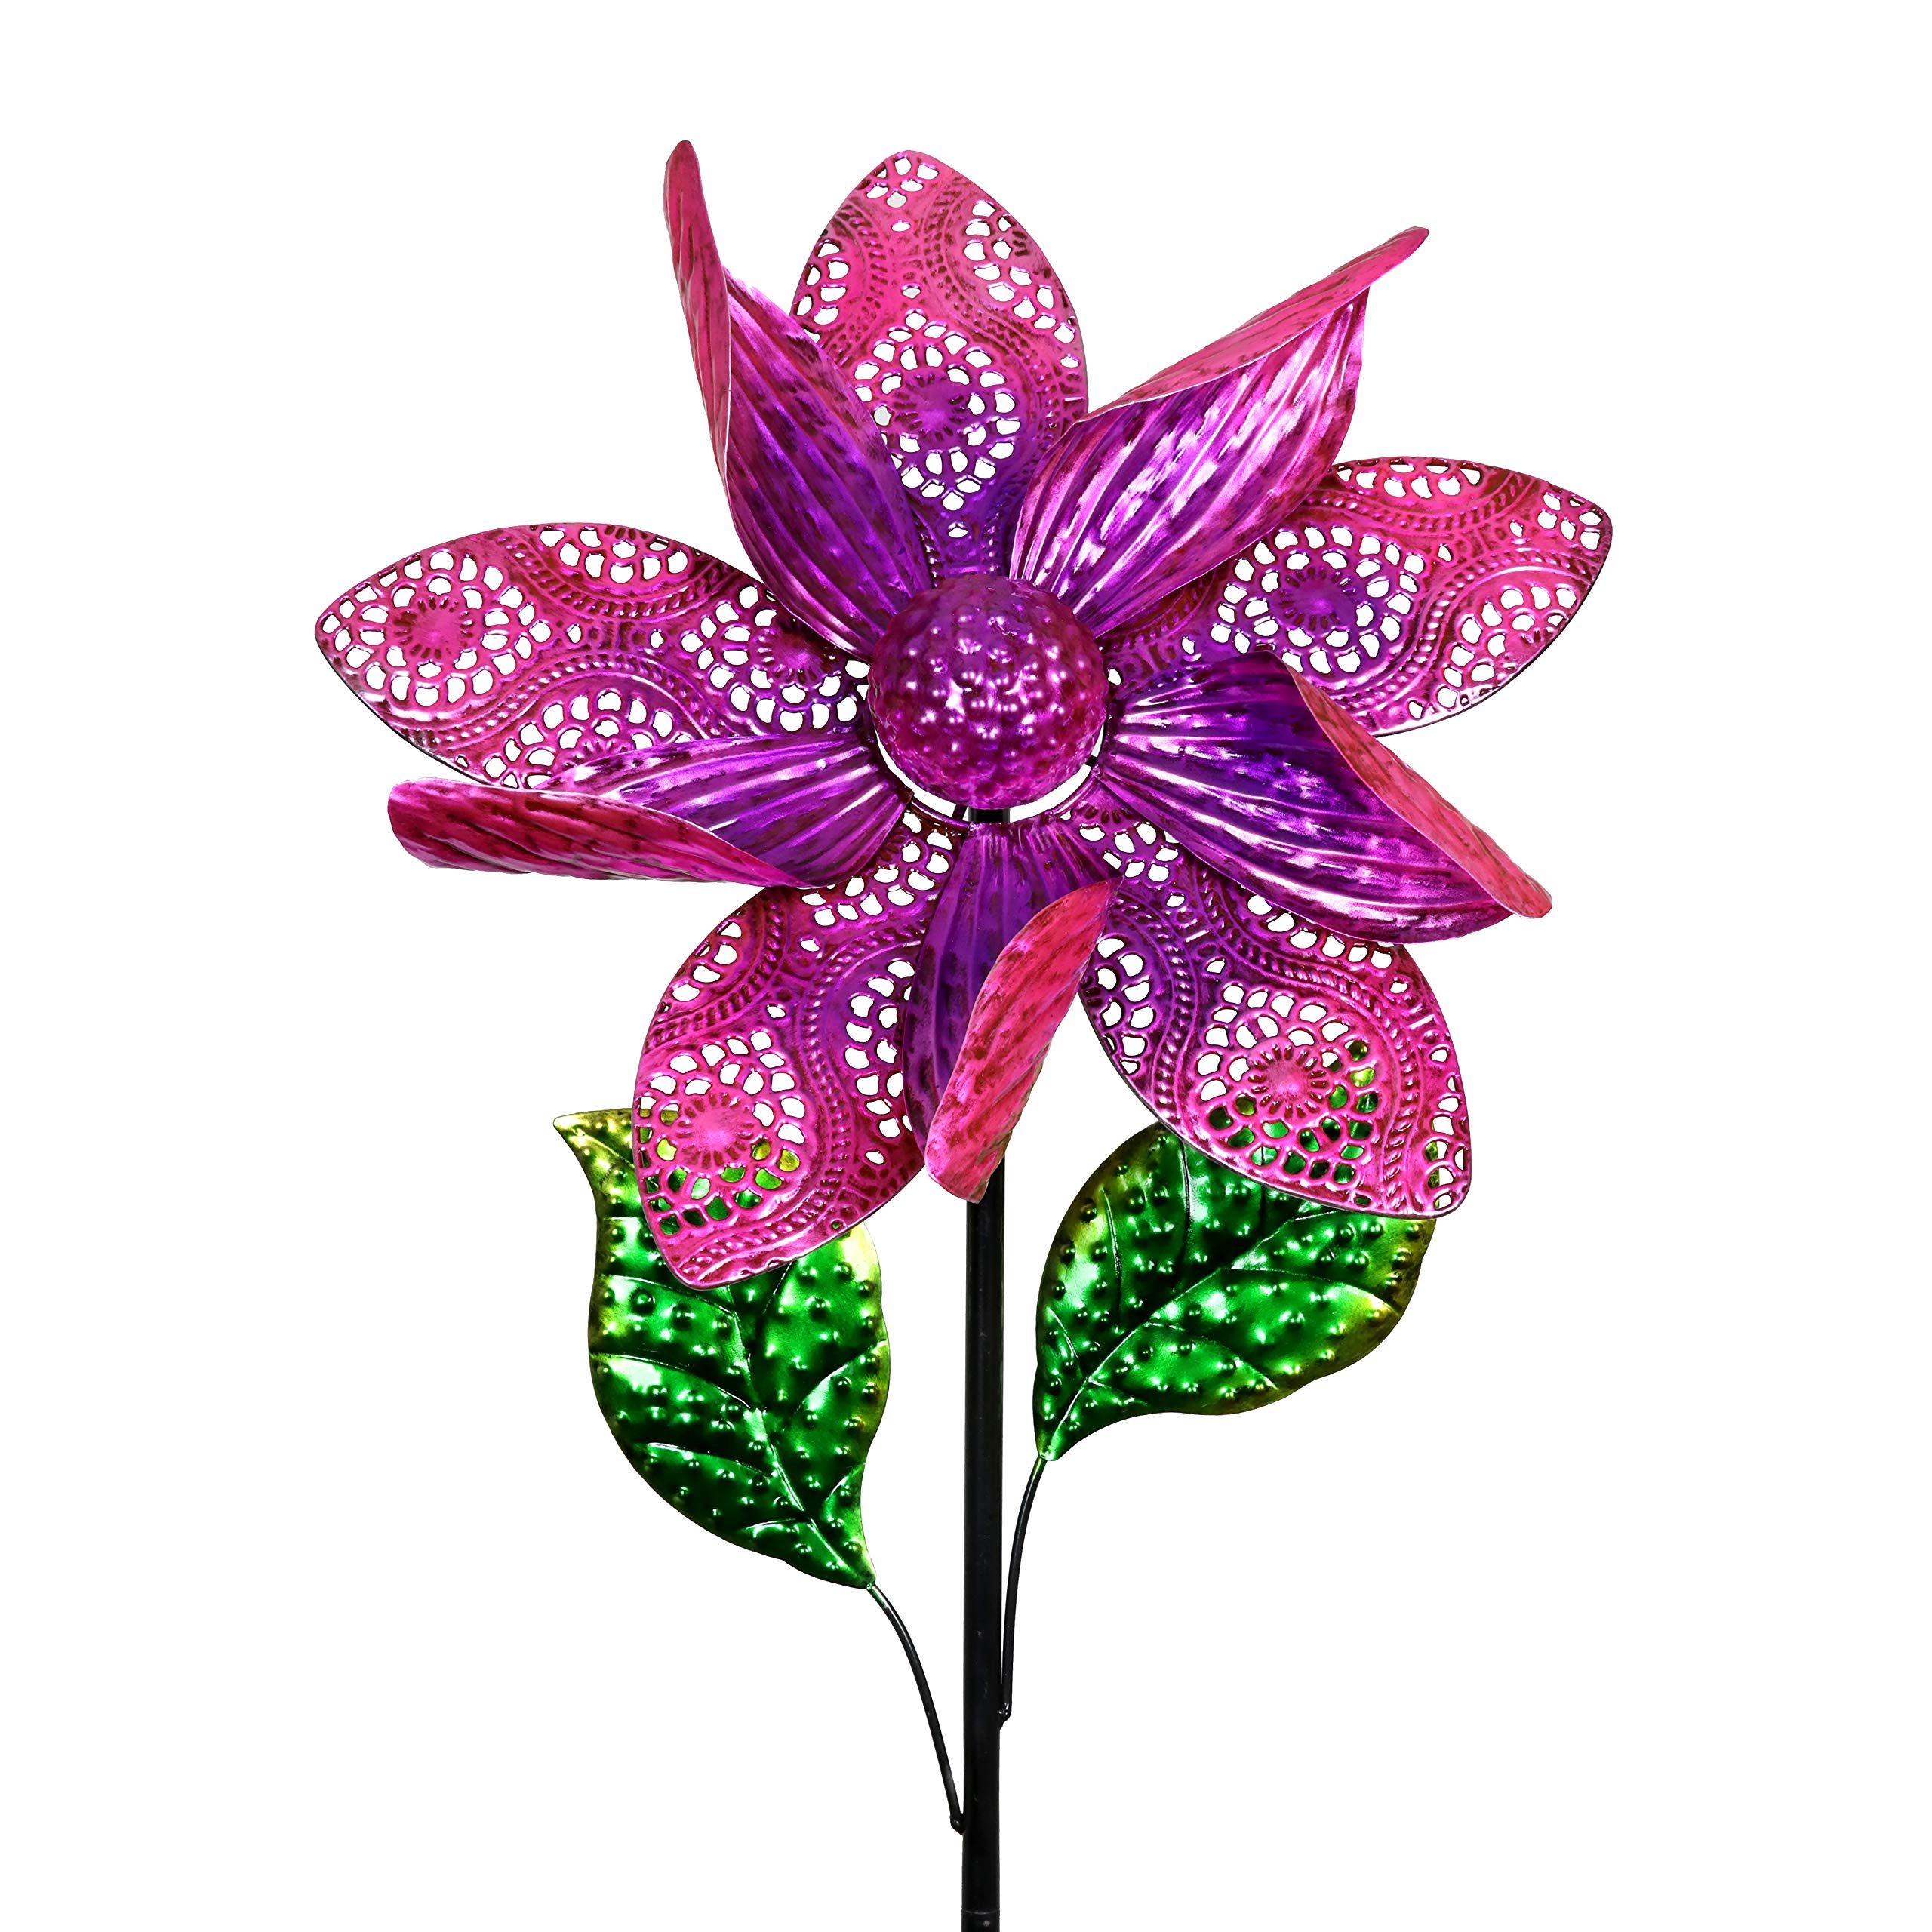 Exhart Dual Layer Purple Flower Wind Spinner Garden Stake - Spinning Metal Flower Garden Stake w/Metal Lace Petals - Kinetic Art Flower Decor Metal Spinners in Purple, 15 x 52 Inches